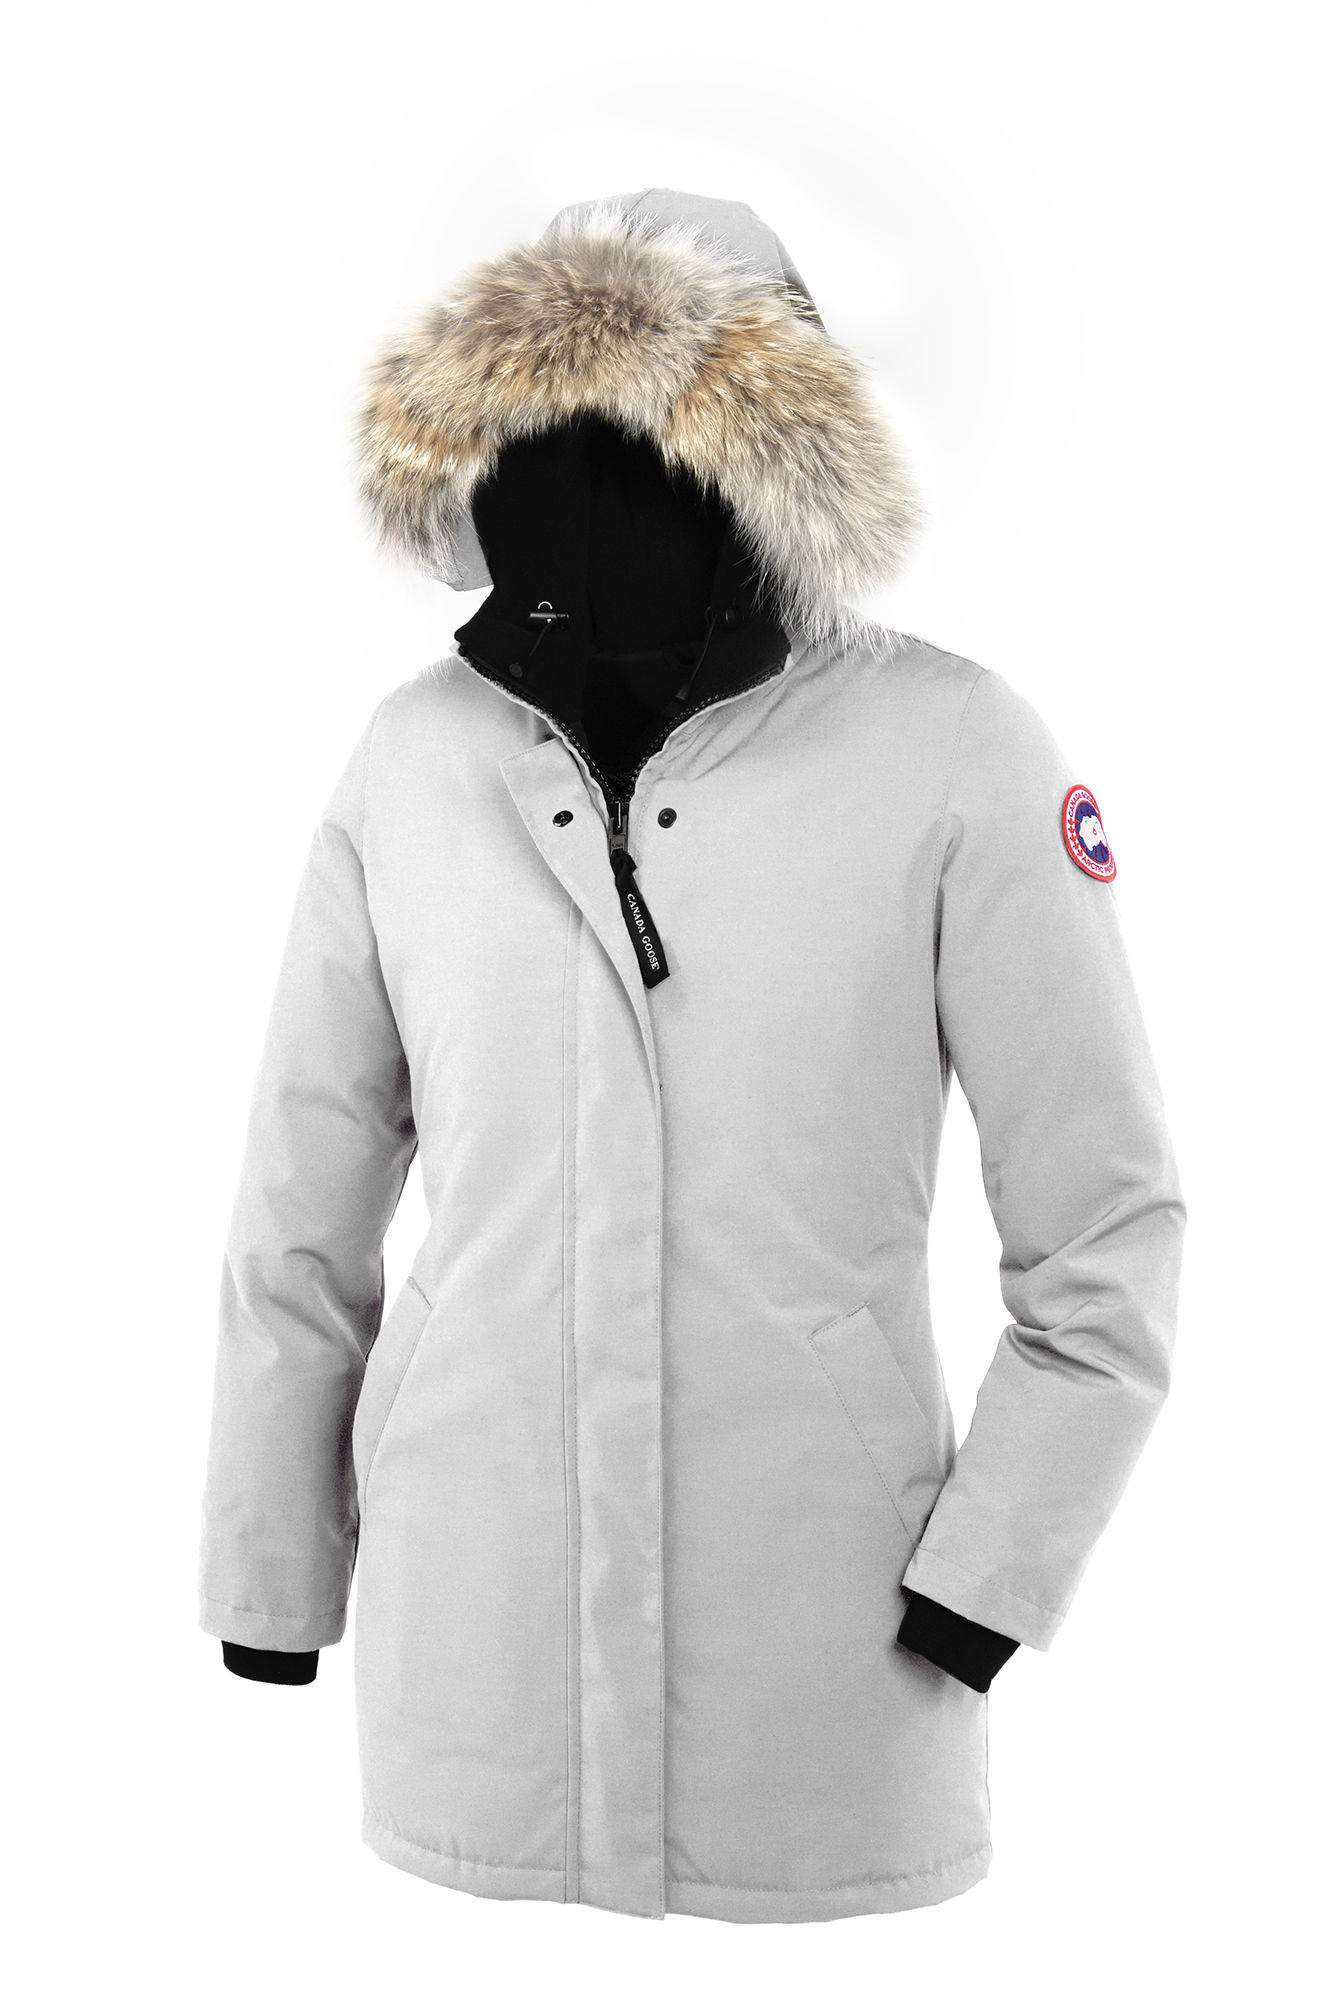 The Canada Goose Parka Is A 700 Winter Jacket Really ...